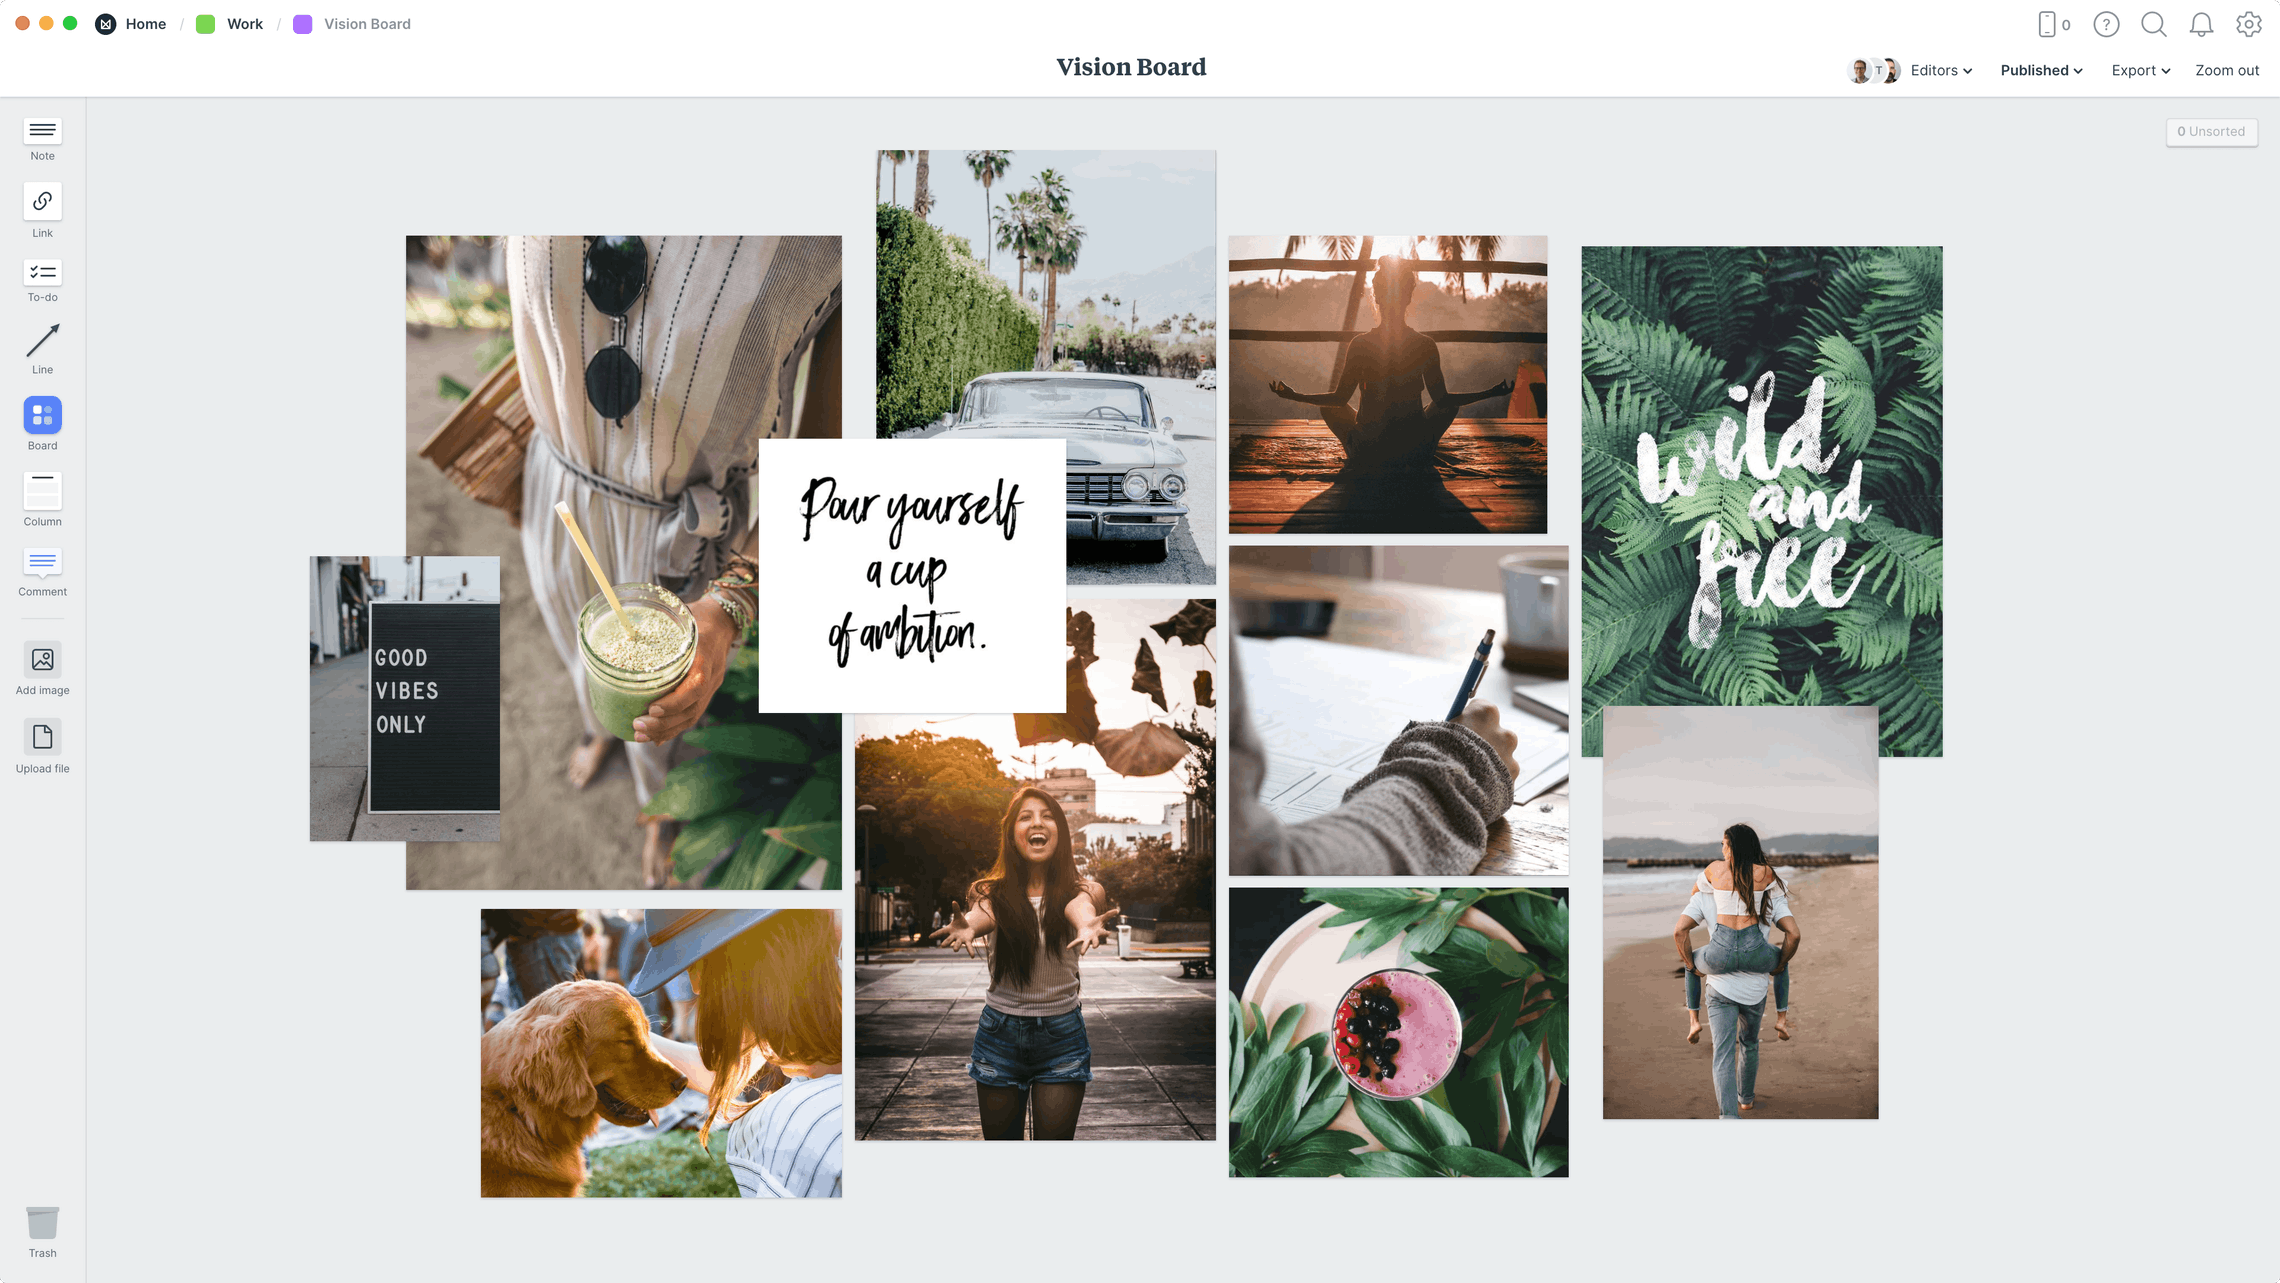 Vision Board Template, within the Milanote app